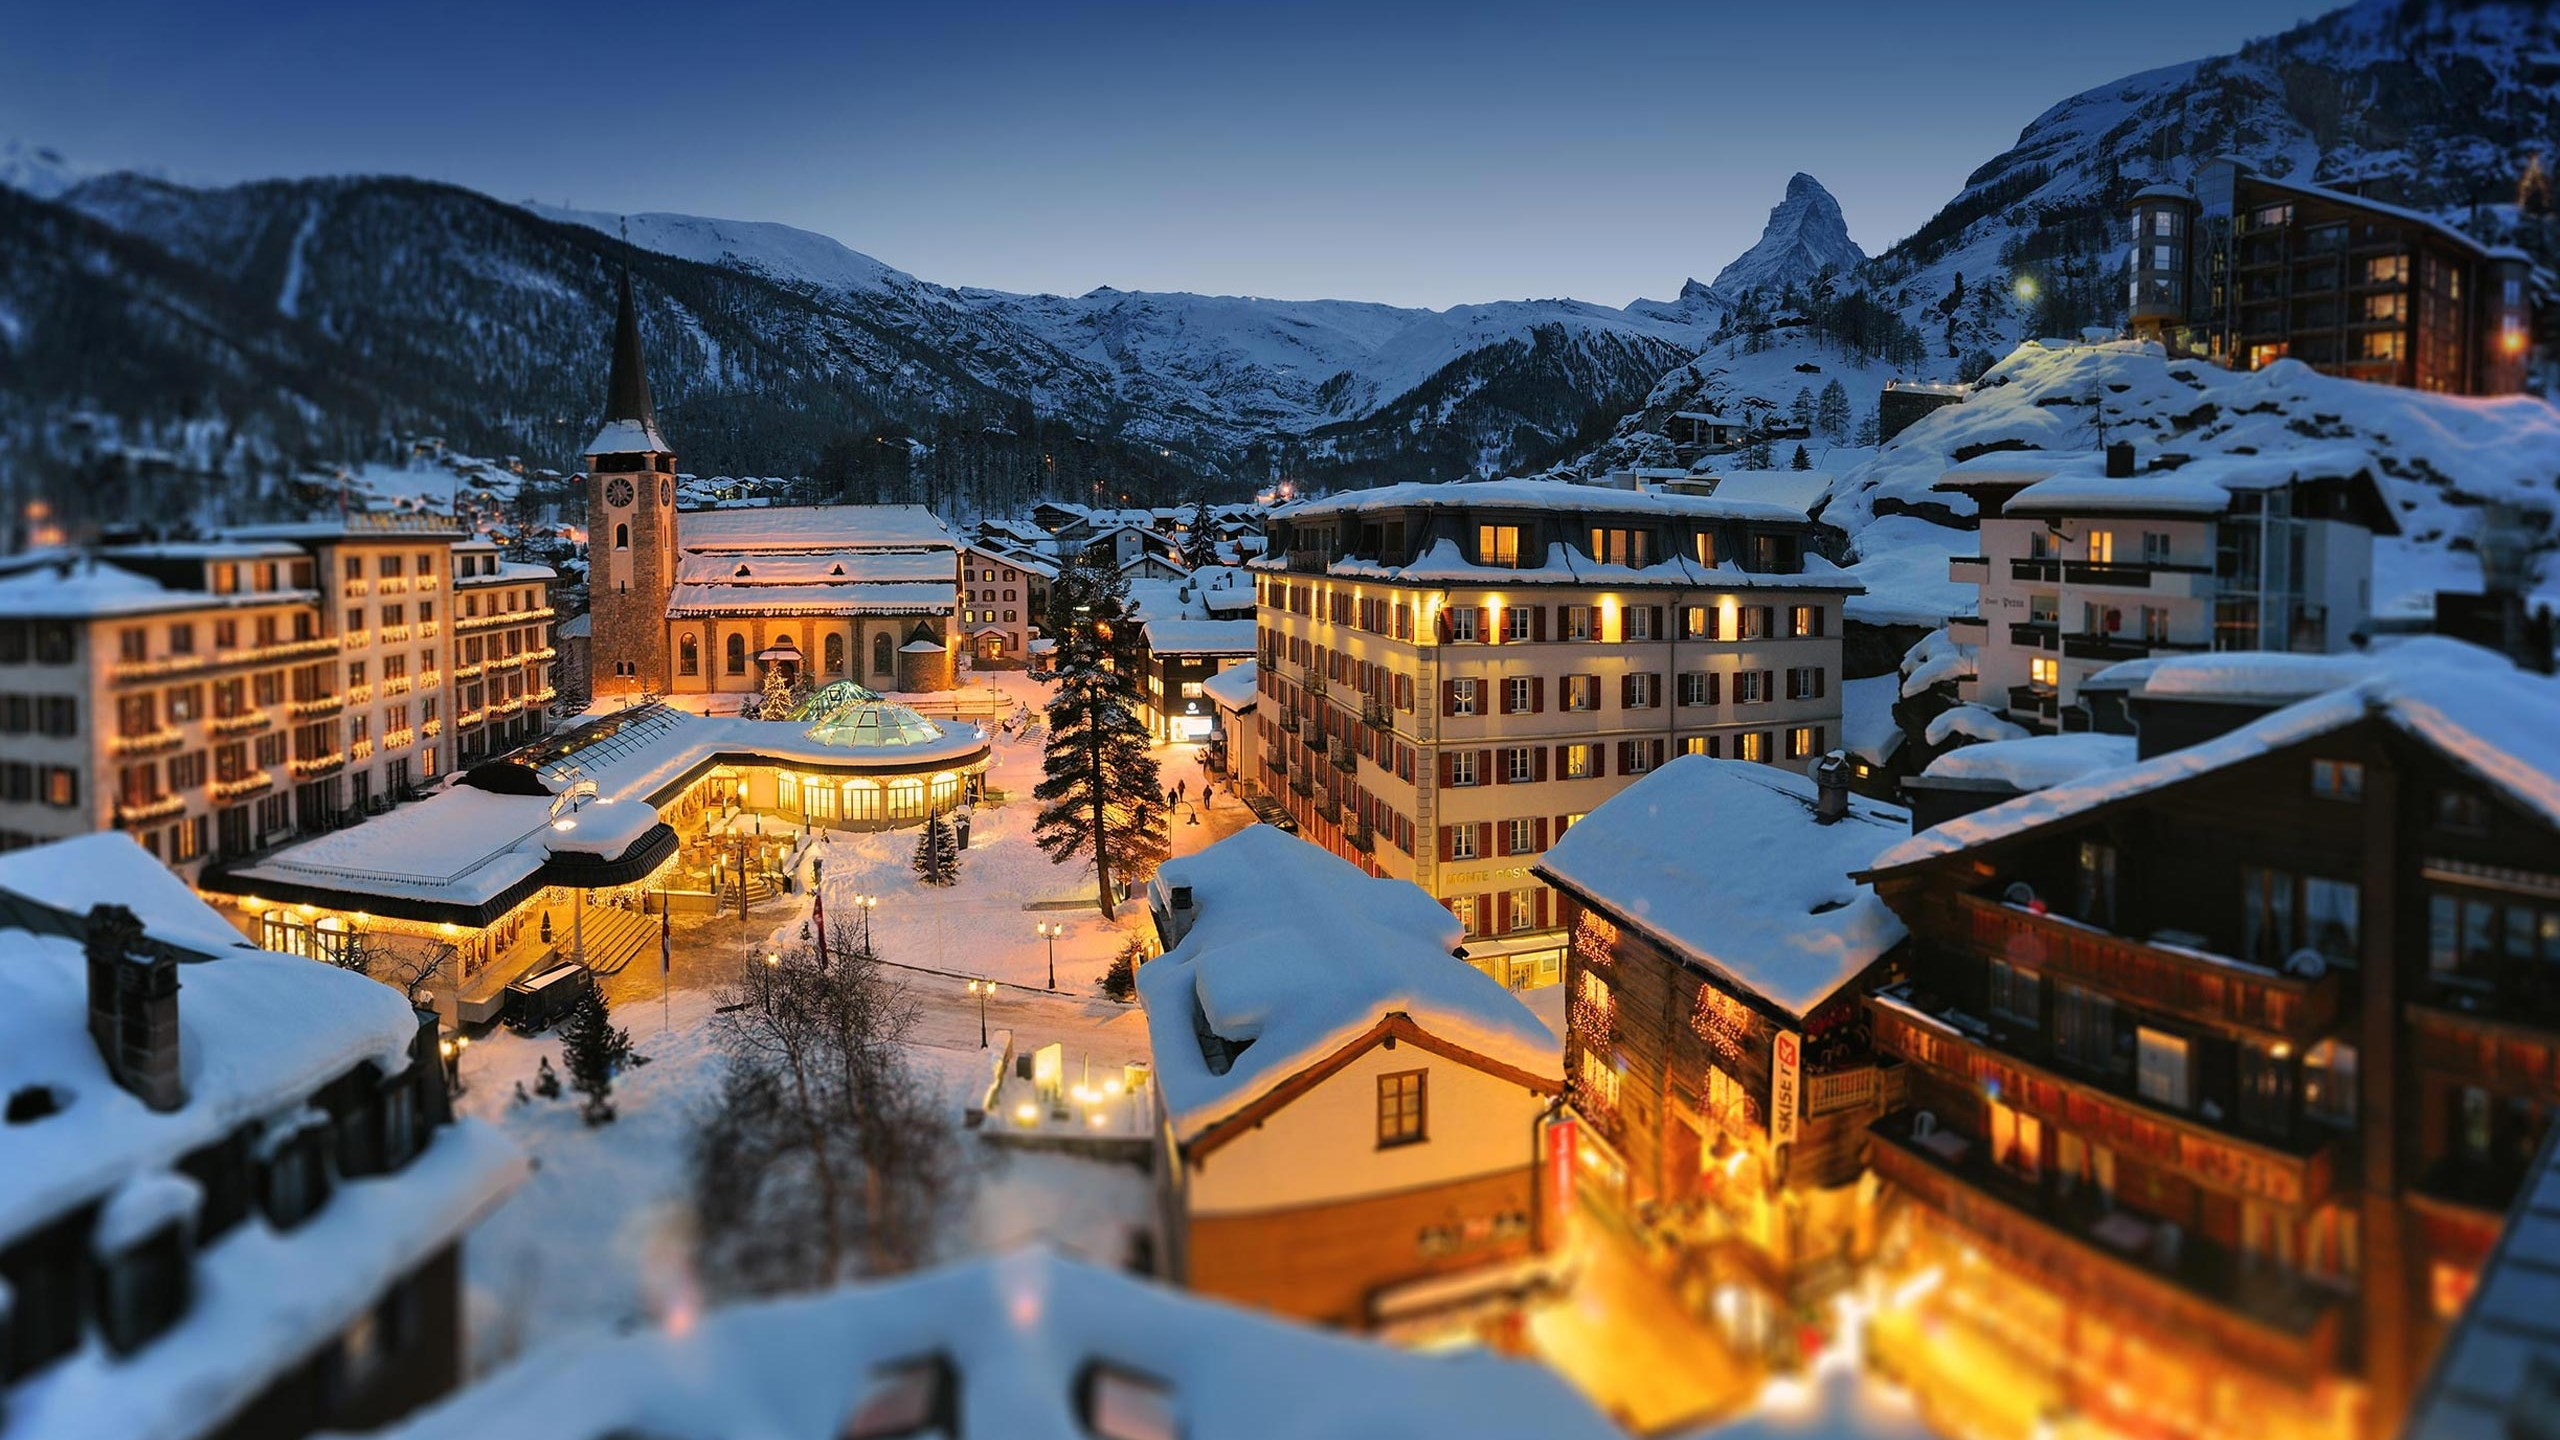 Winterstimmung Grand Hotels Im Dorfzentrum